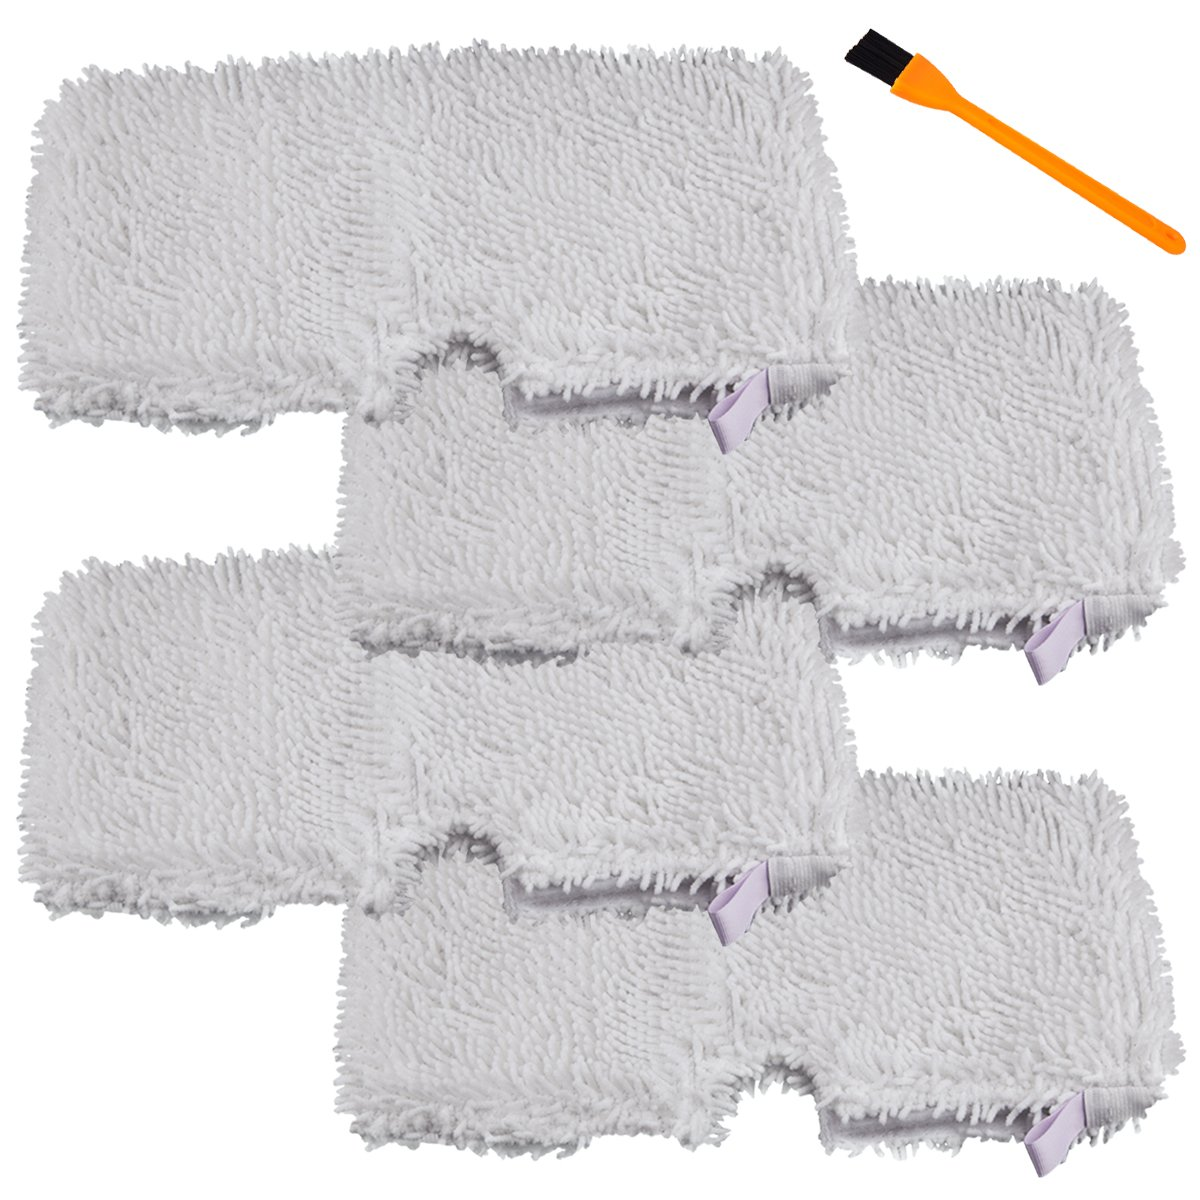 Honfa Shark Steam Mop Pads, 5 Pcs Replacement Pads for Shark Vacuum S3250 S3251 S3101 and A Free Cleaning Brush Hongfa